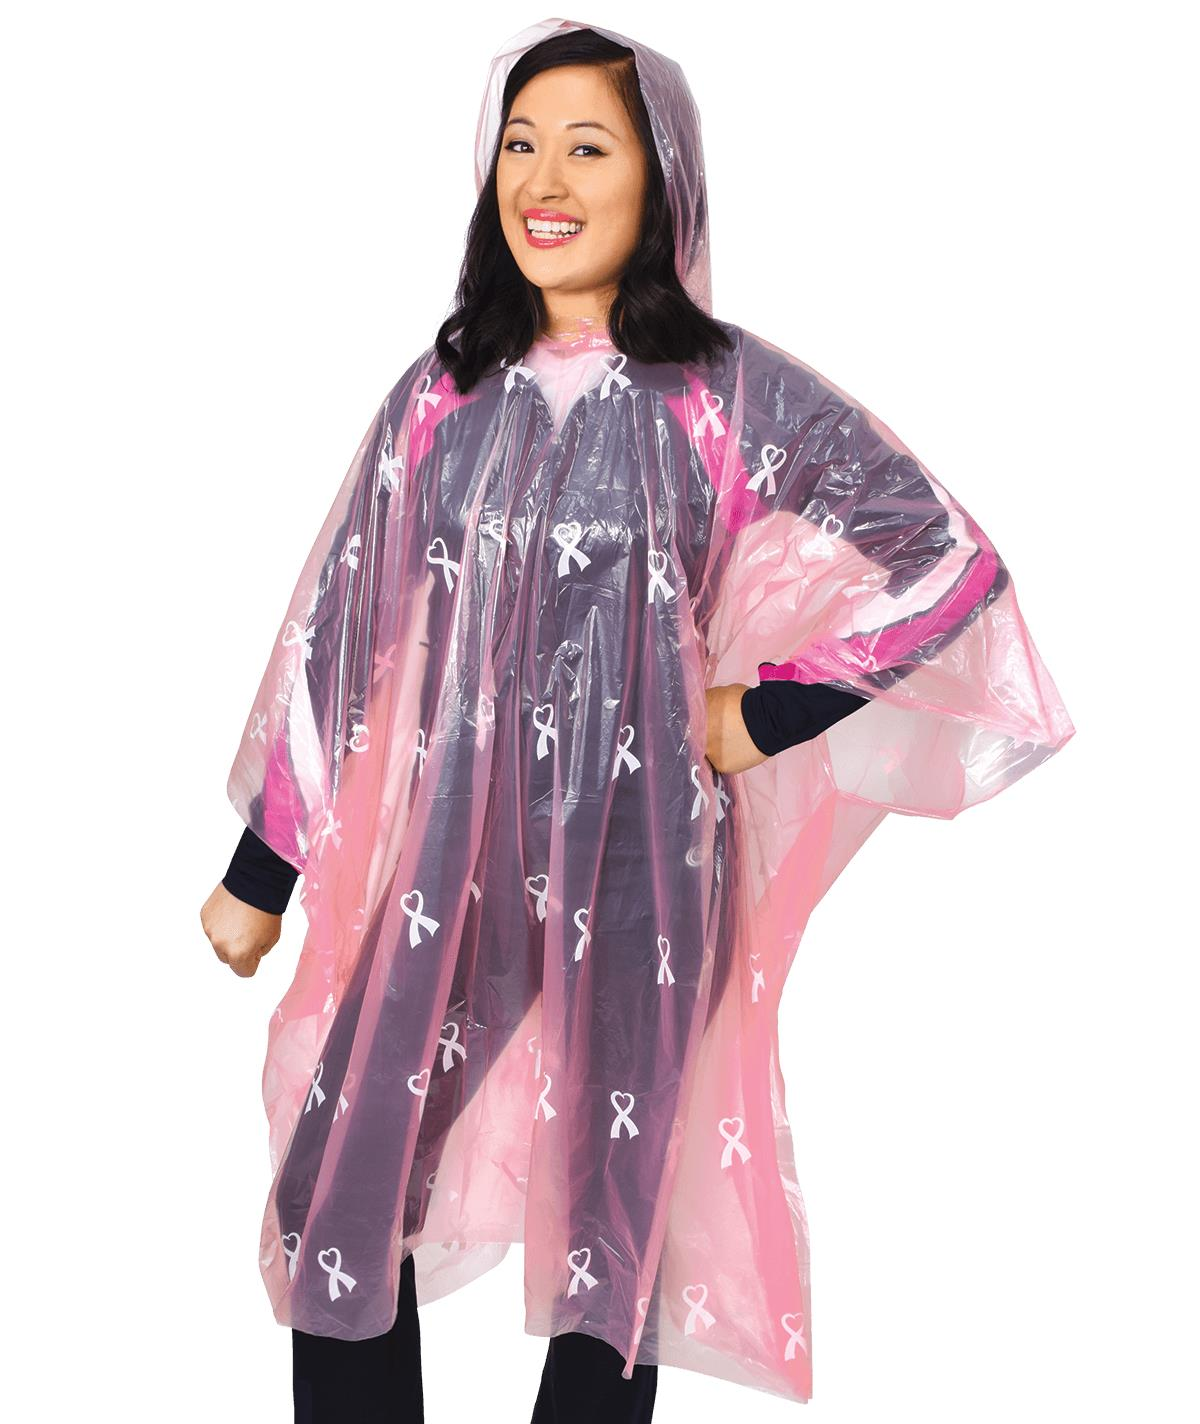 Chassé Cheer For The Cause Rain Poncho